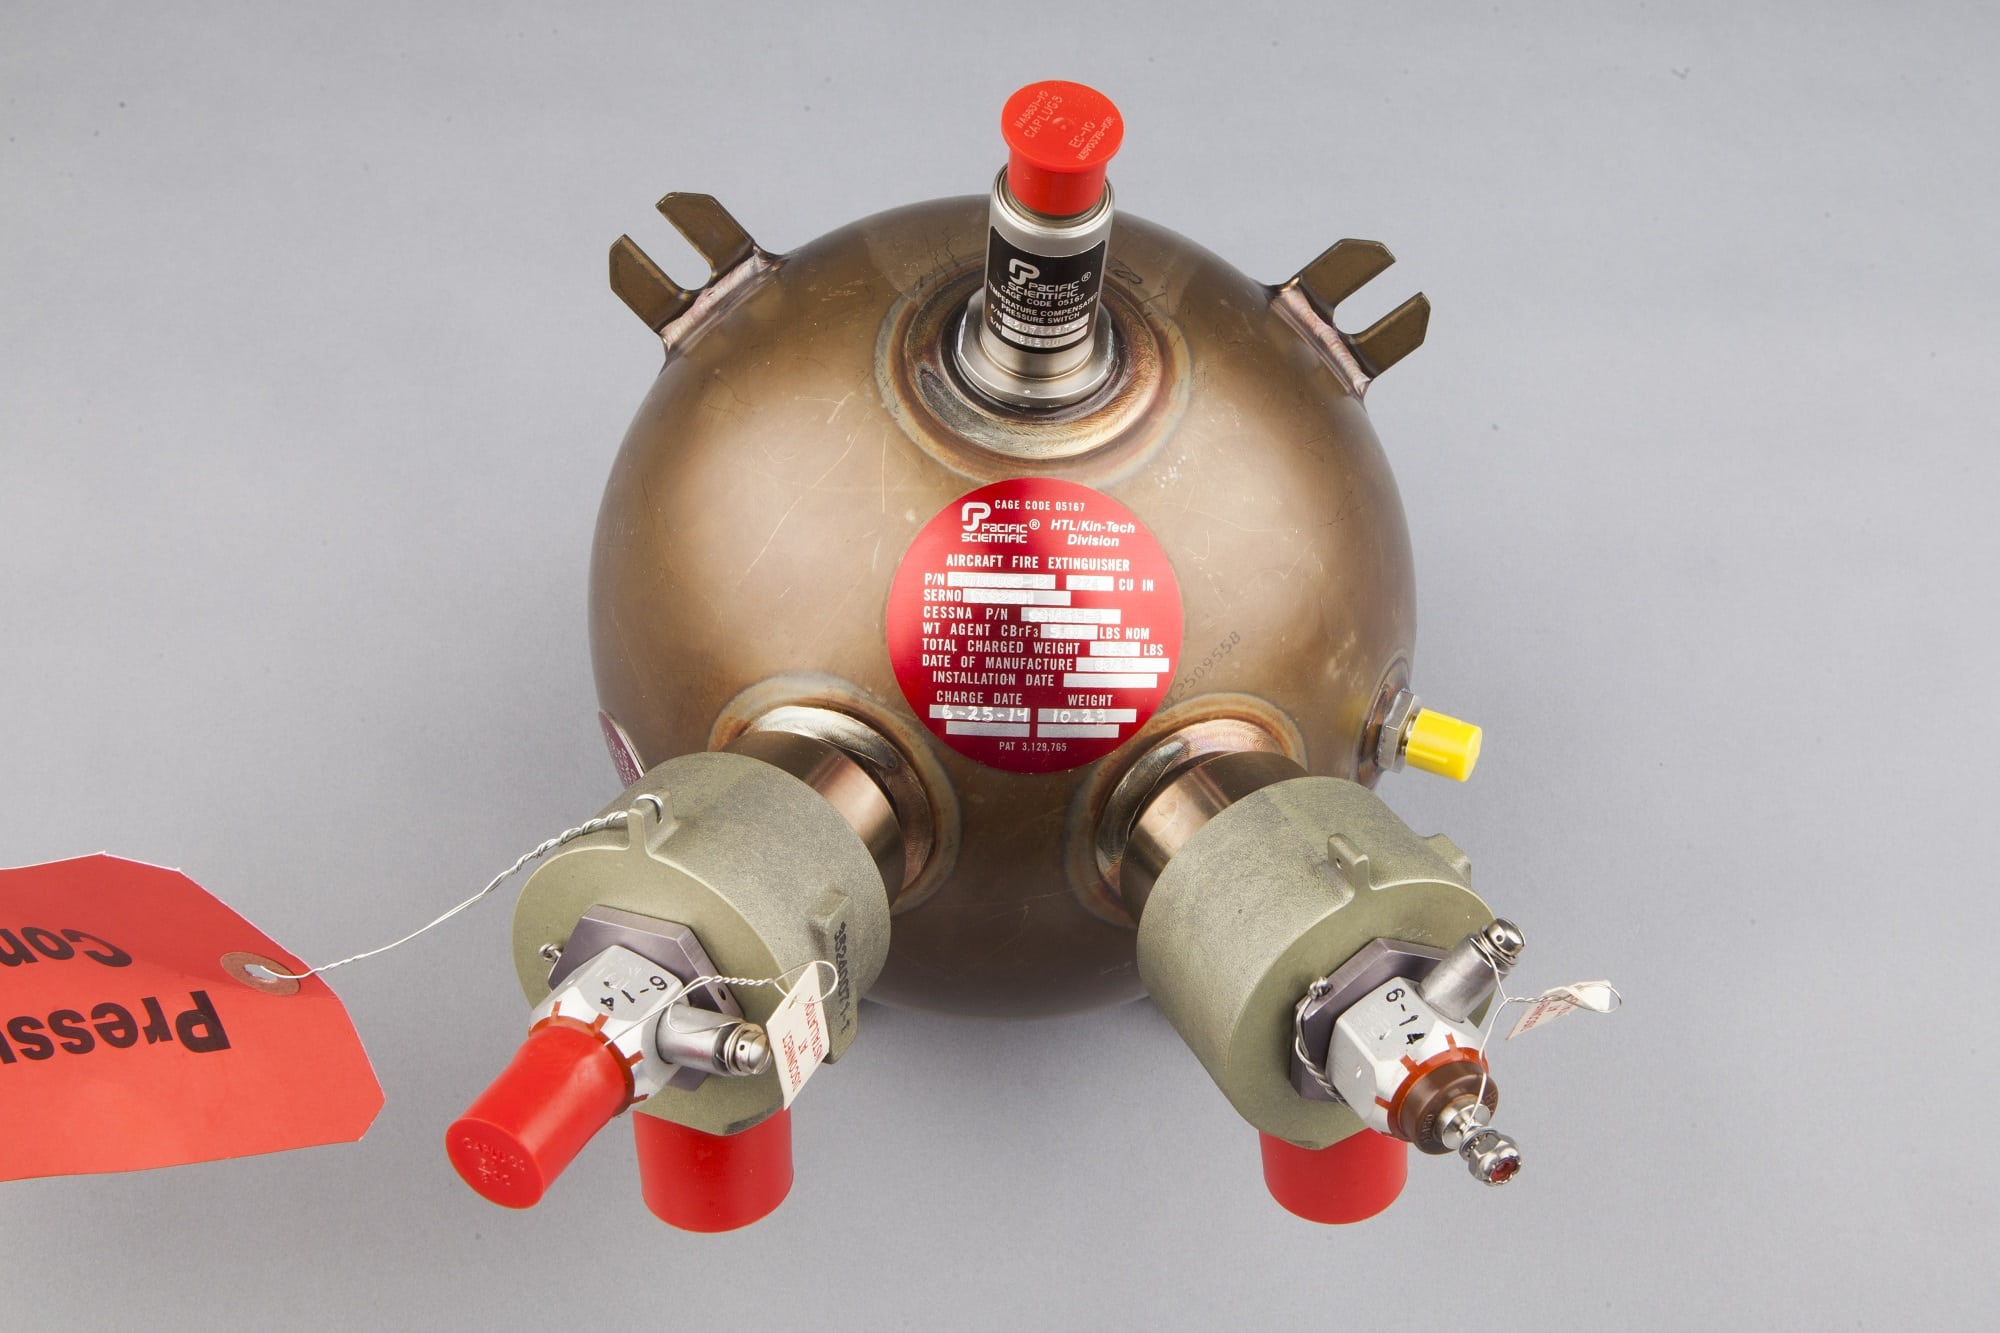 Meggitt fire extinguisher